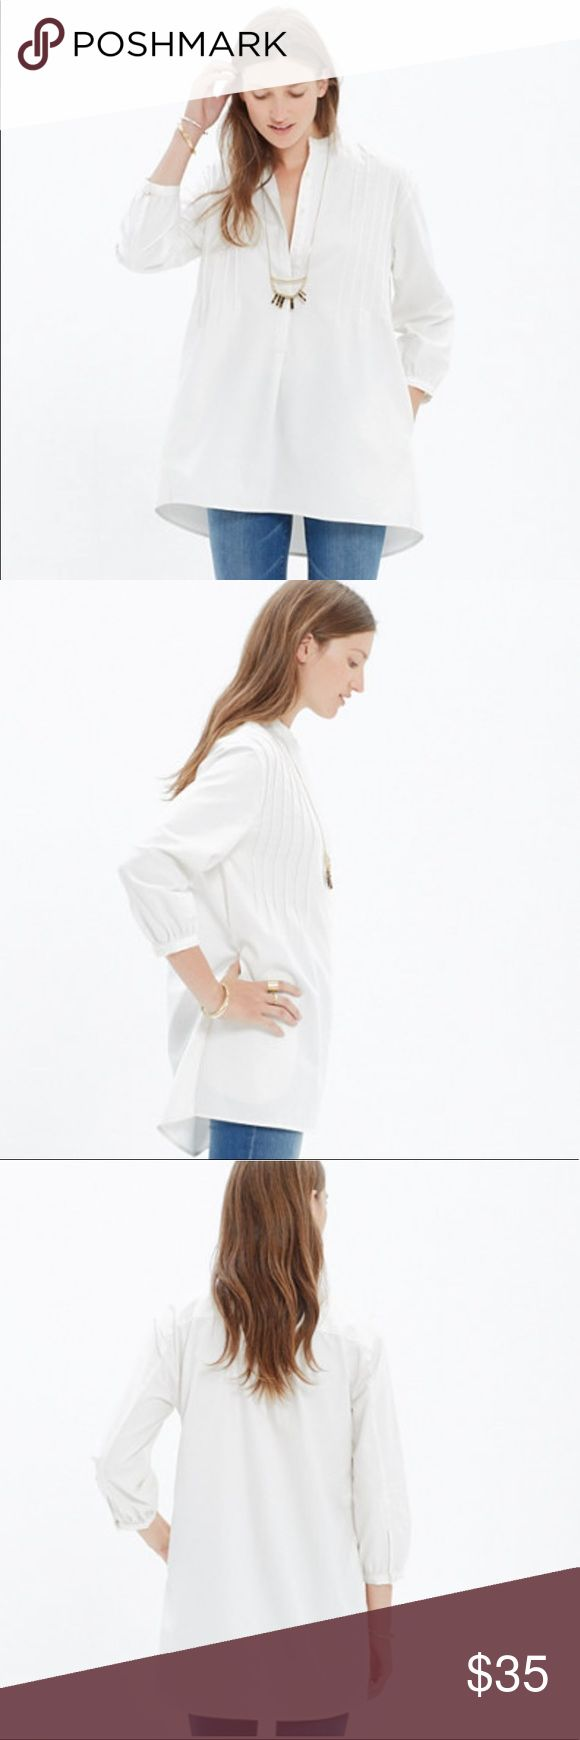 "Madewell Pintuck Tunic Madewell pintuck tunic in white. A cool, paired down take on a traditional peasant blouse. Size xxs. Slightly oversized fit. Made from 80% cotton 20% linen. Top is in excellent used condition.   Measurements:  Pit to pit: 17.5"" Length: 26"" Madewell Tops Tunics"